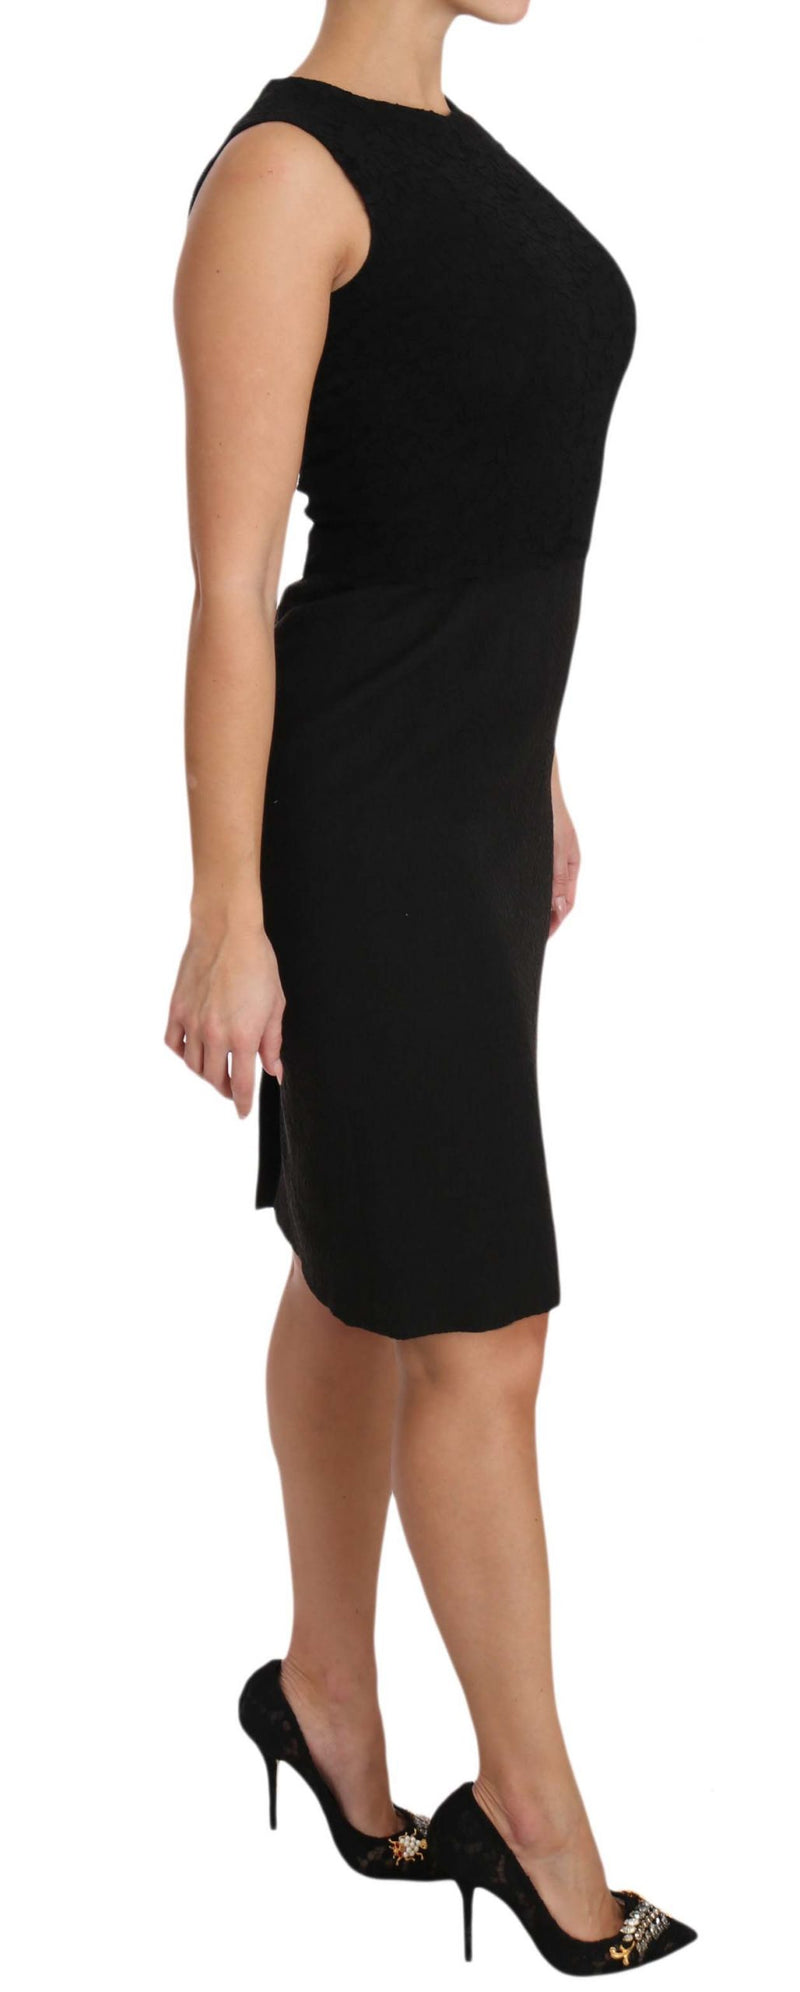 Black Stretch Sheath Bodycon Mini Dress